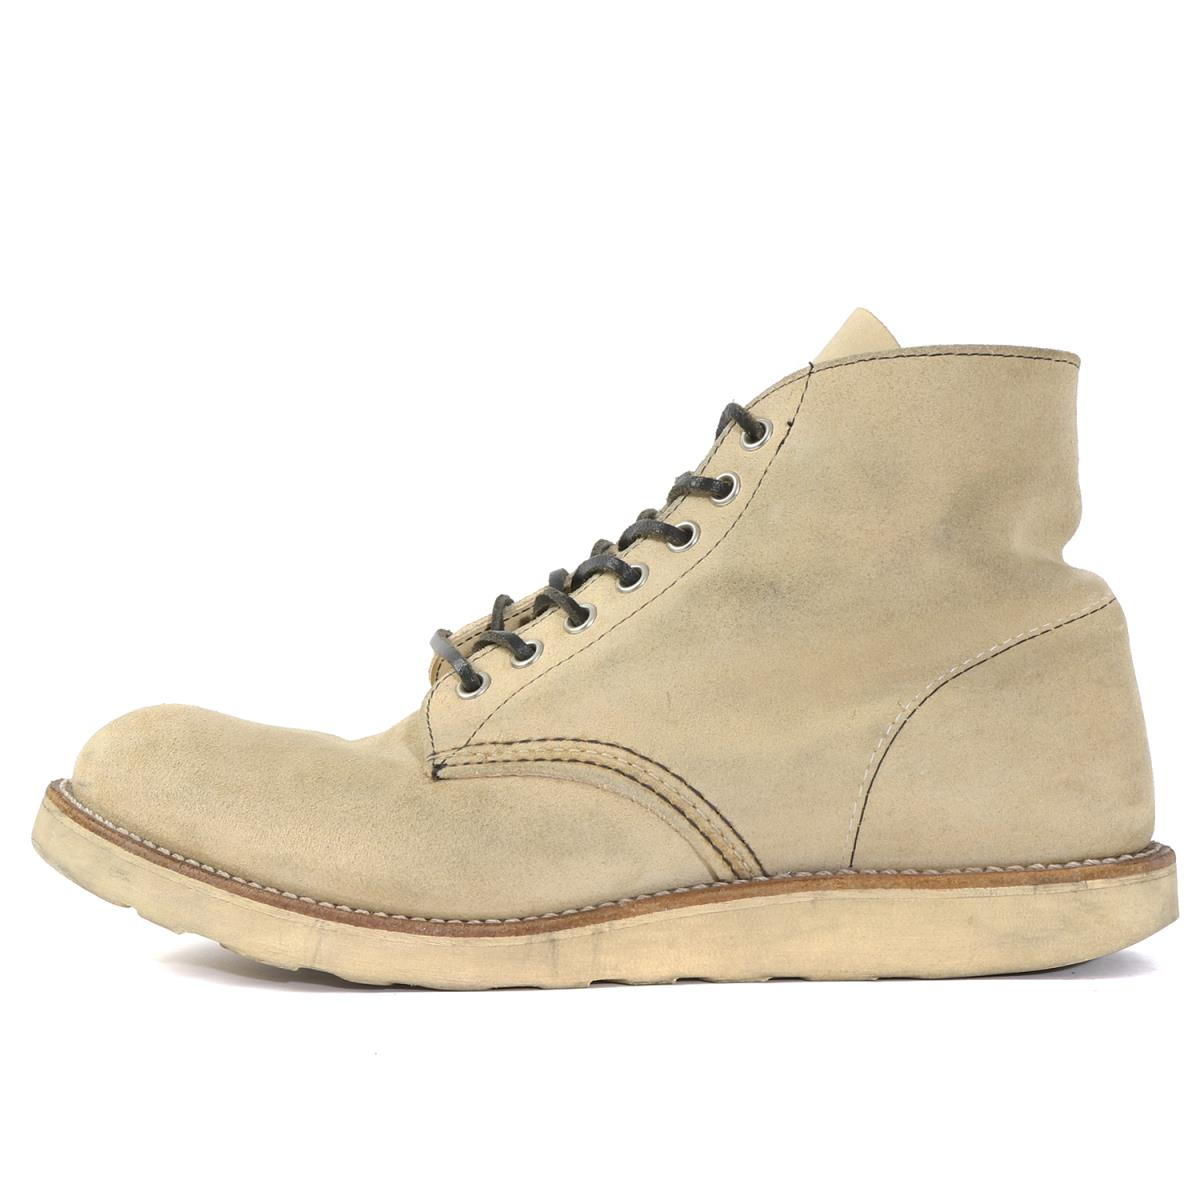 Red Wing (レッド ウィング) 12' 8167 プレーントゥブーツ(6inch PLAIN TOE) ベージュ US9.5 D(27.5cm) 【K1949】【中古】【あす楽☆対応可】